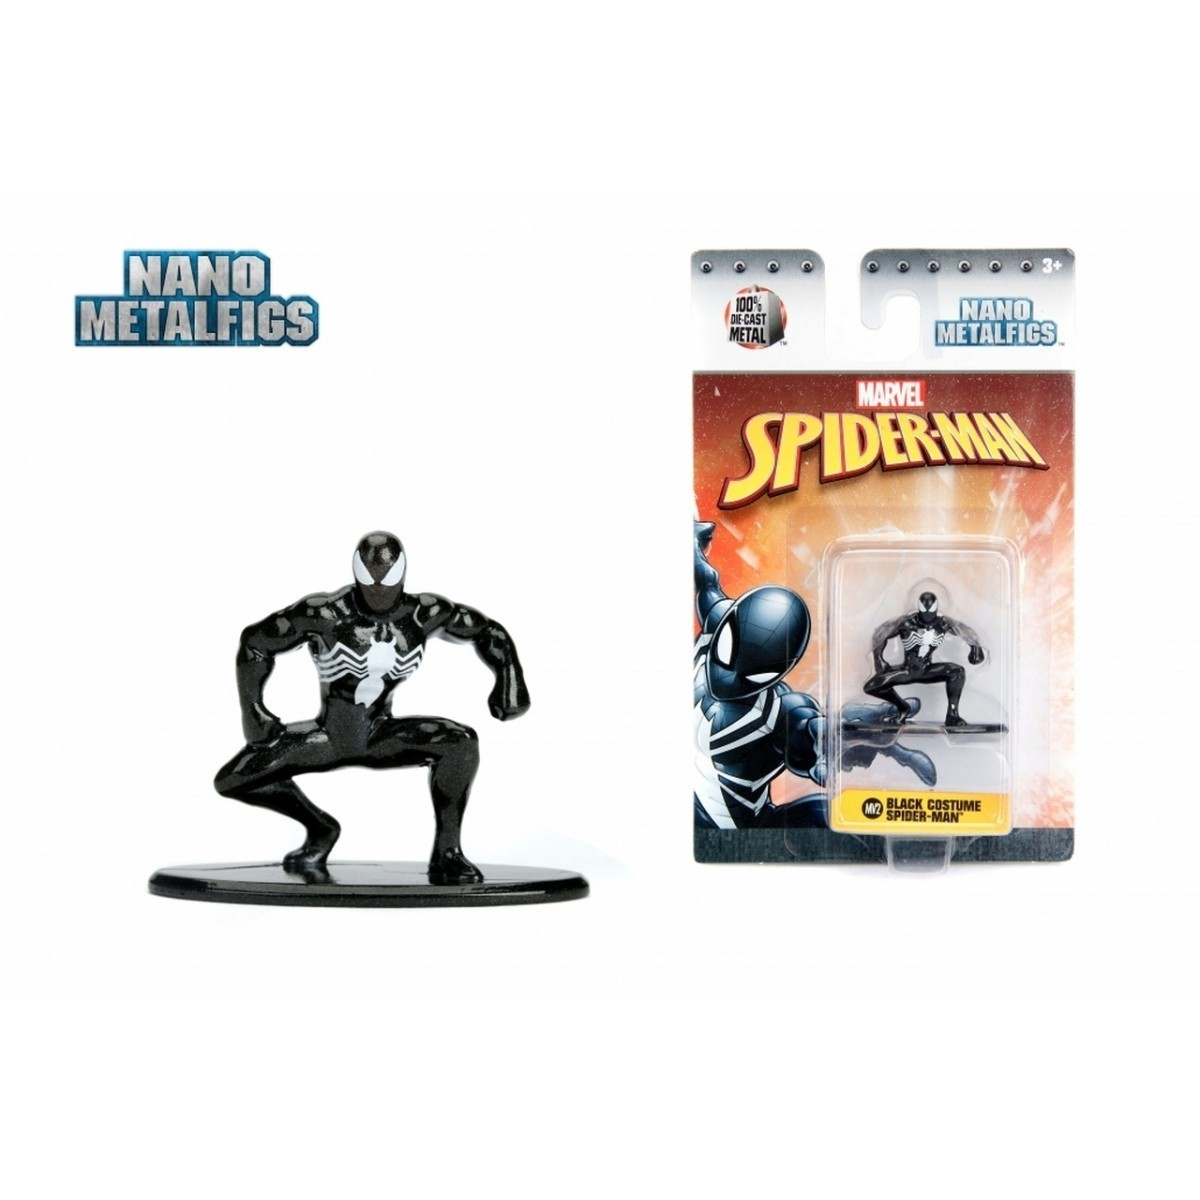 Nano Metalfigs: Homem-Aranha Uniforme Preto (Spider-Man Black Costume): Marvel (MV2)